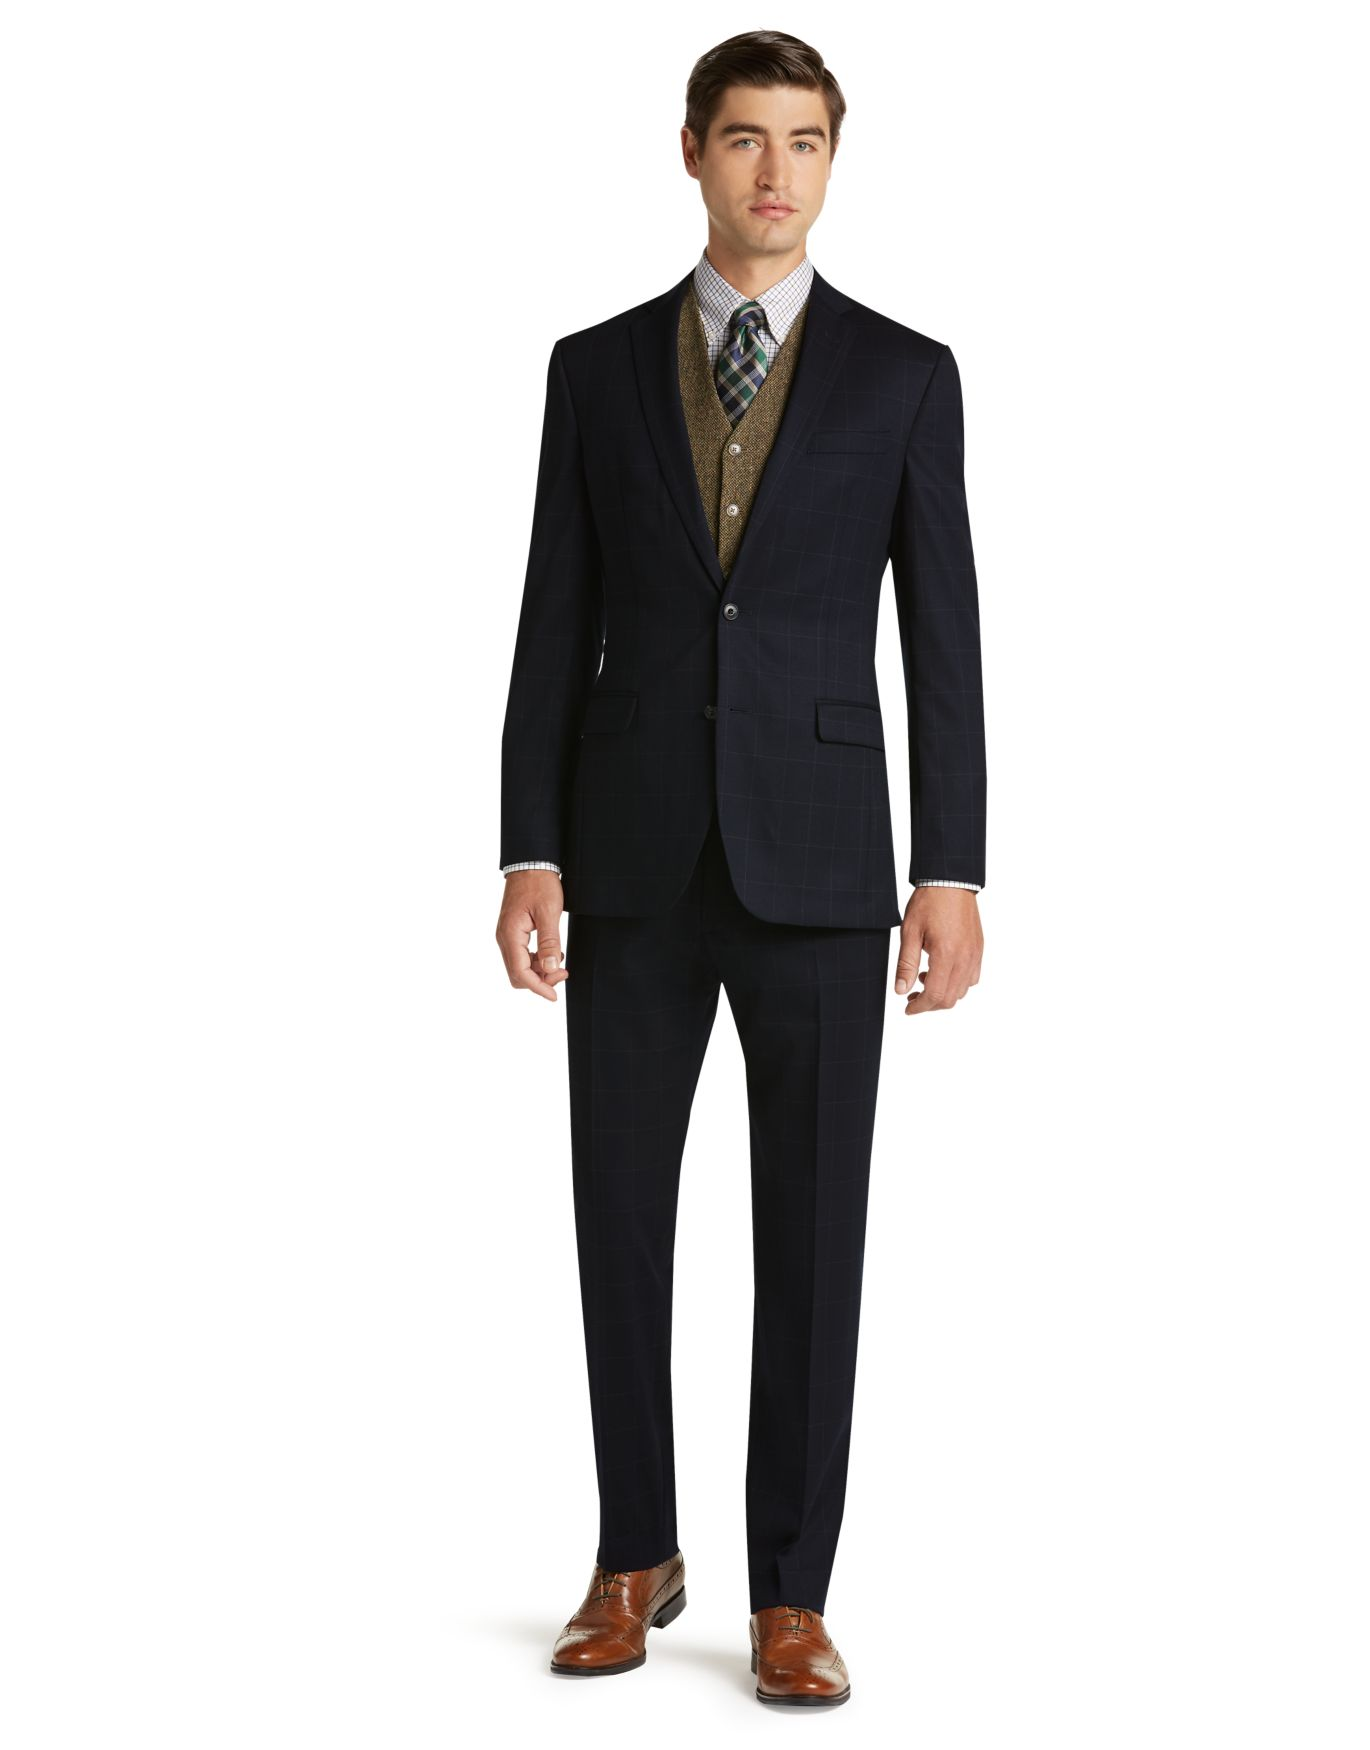 1905 Collection Slim Fit Windowpane Suit - 1905 Suits | Jos A Bank